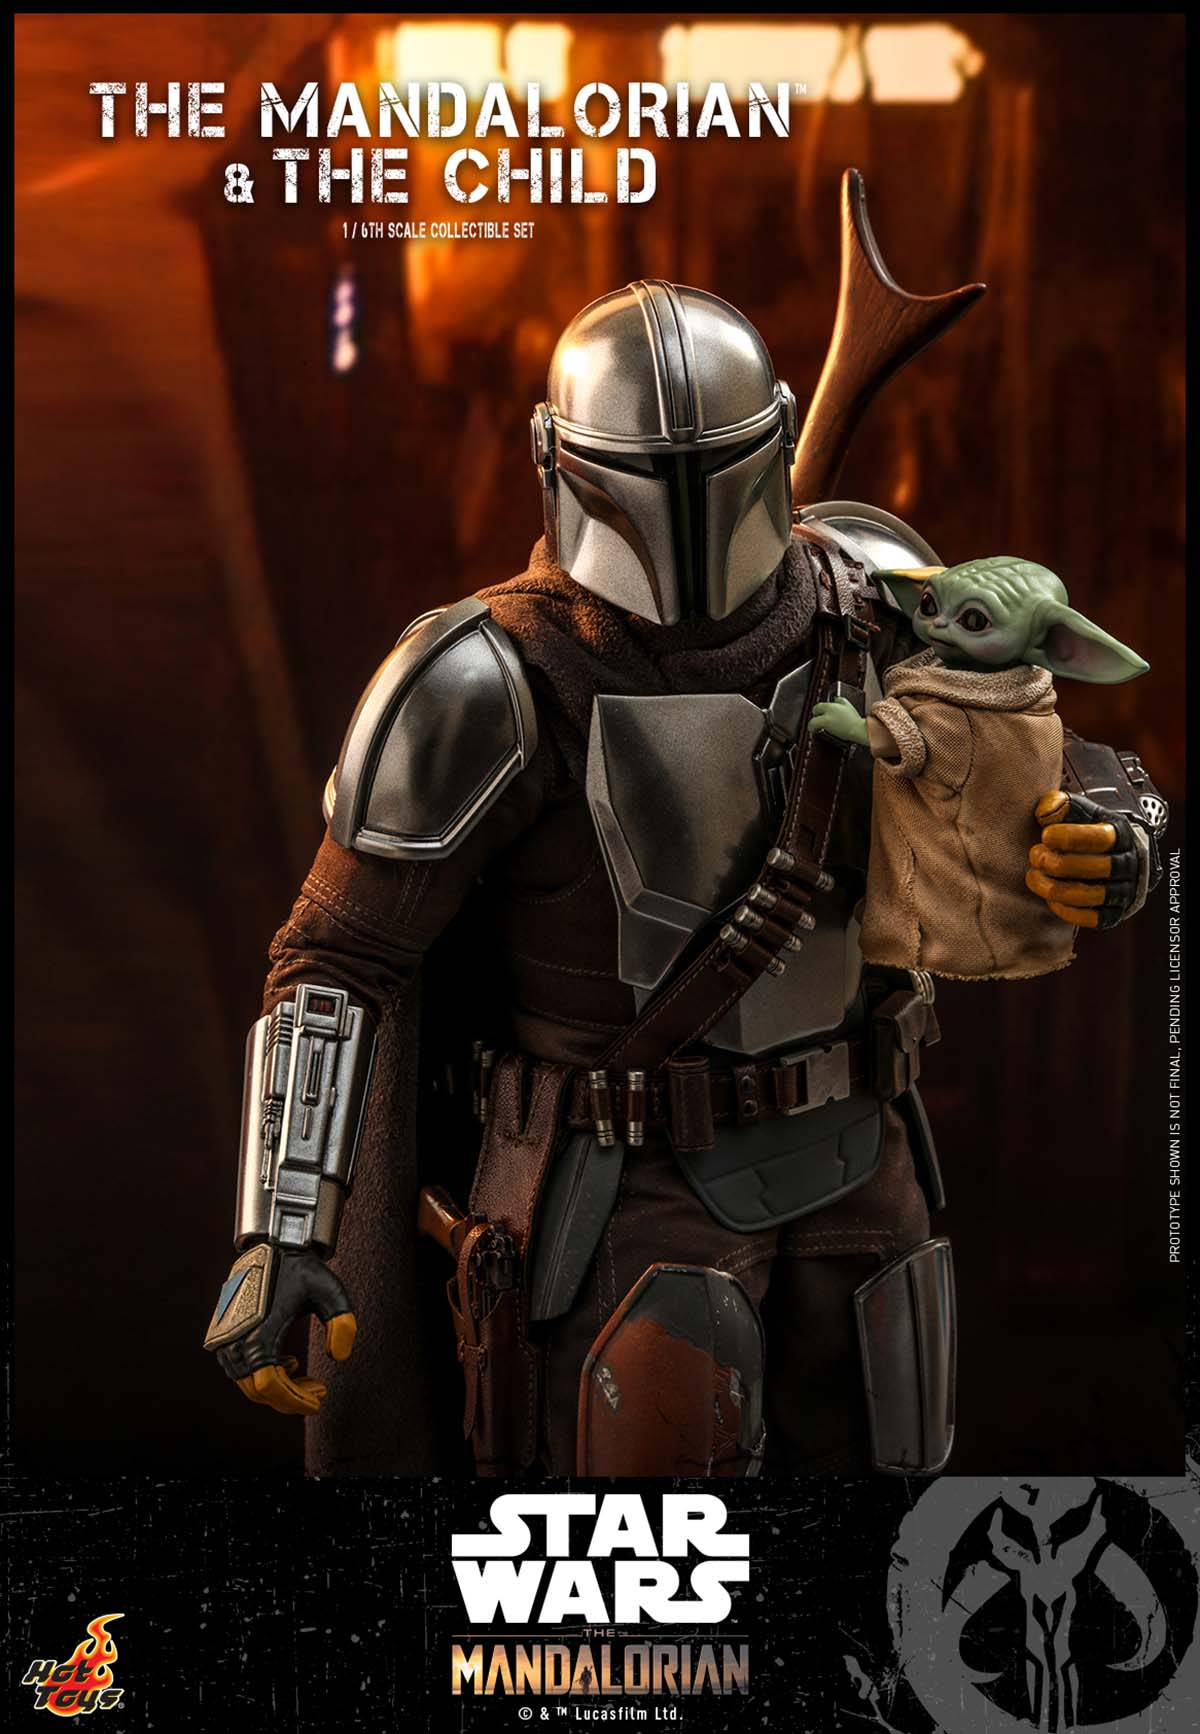 hot-toys-stm-mandalorian-and-child-collectible-set_pr2